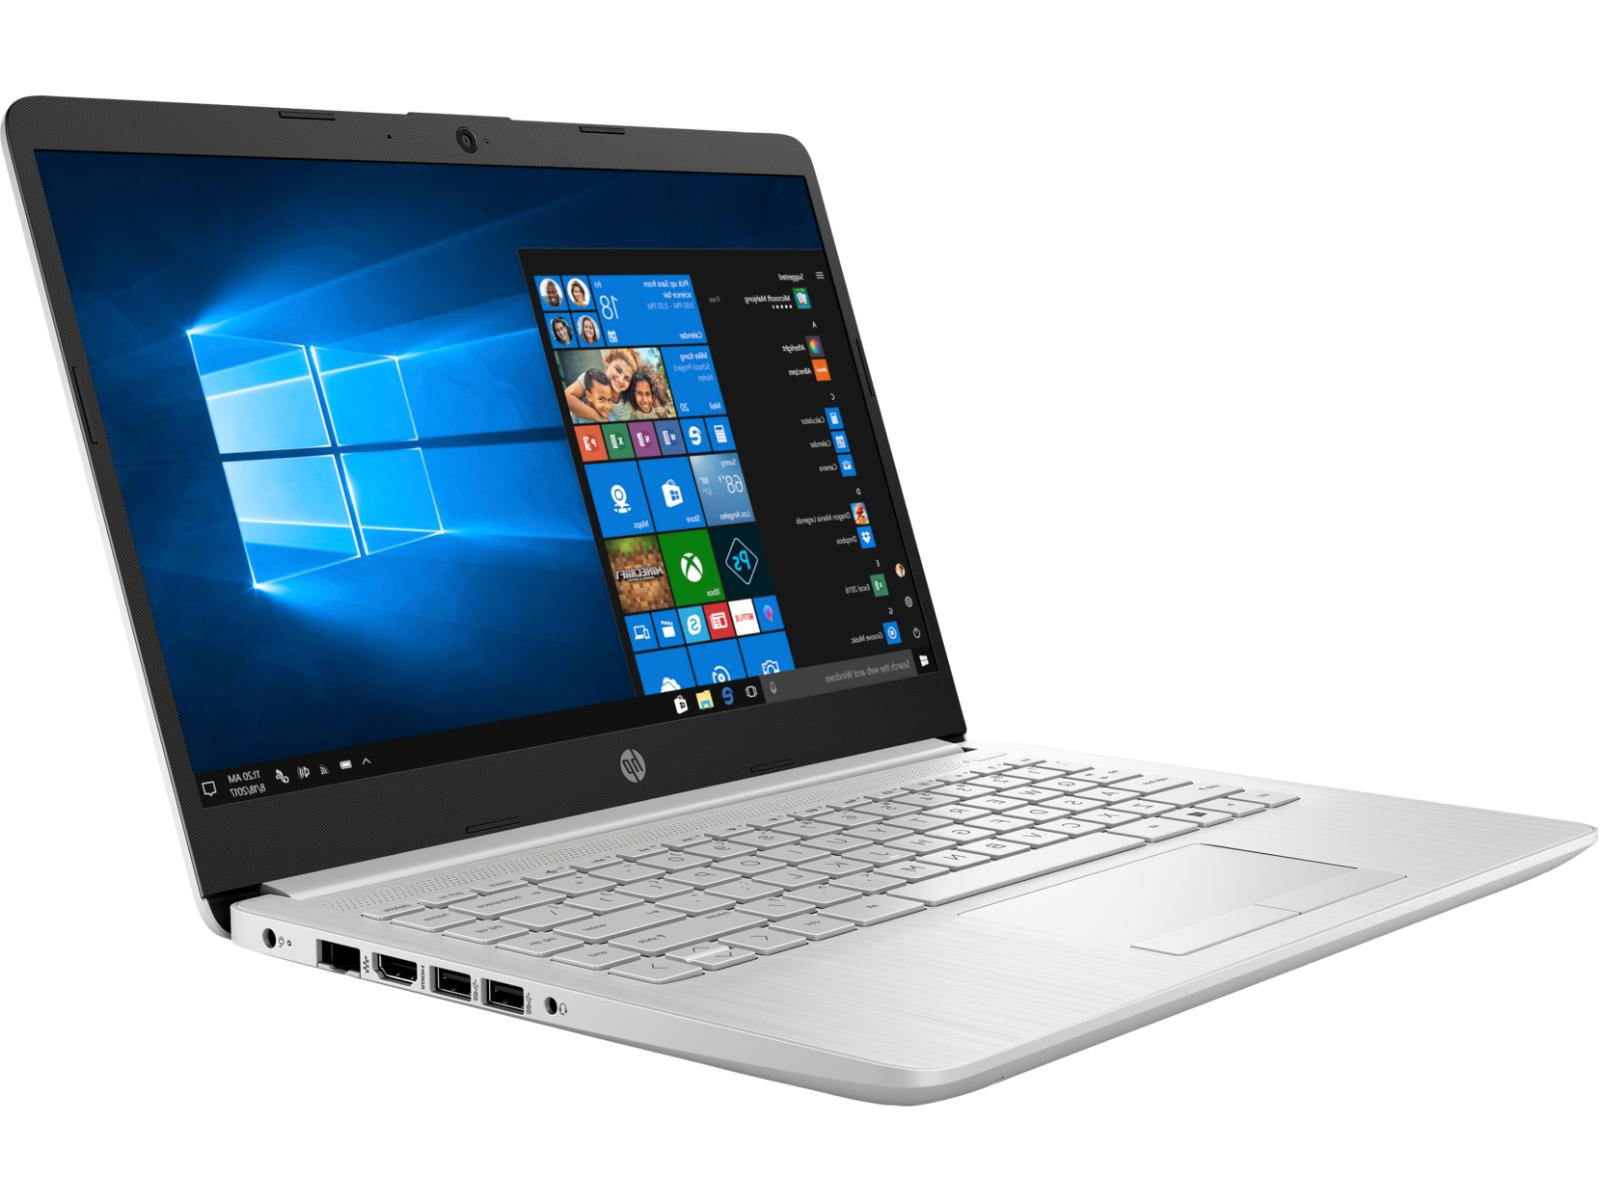 NEW HP laptop AMD Ryzen 3 3.5GHz 1 4GB RAM Windows